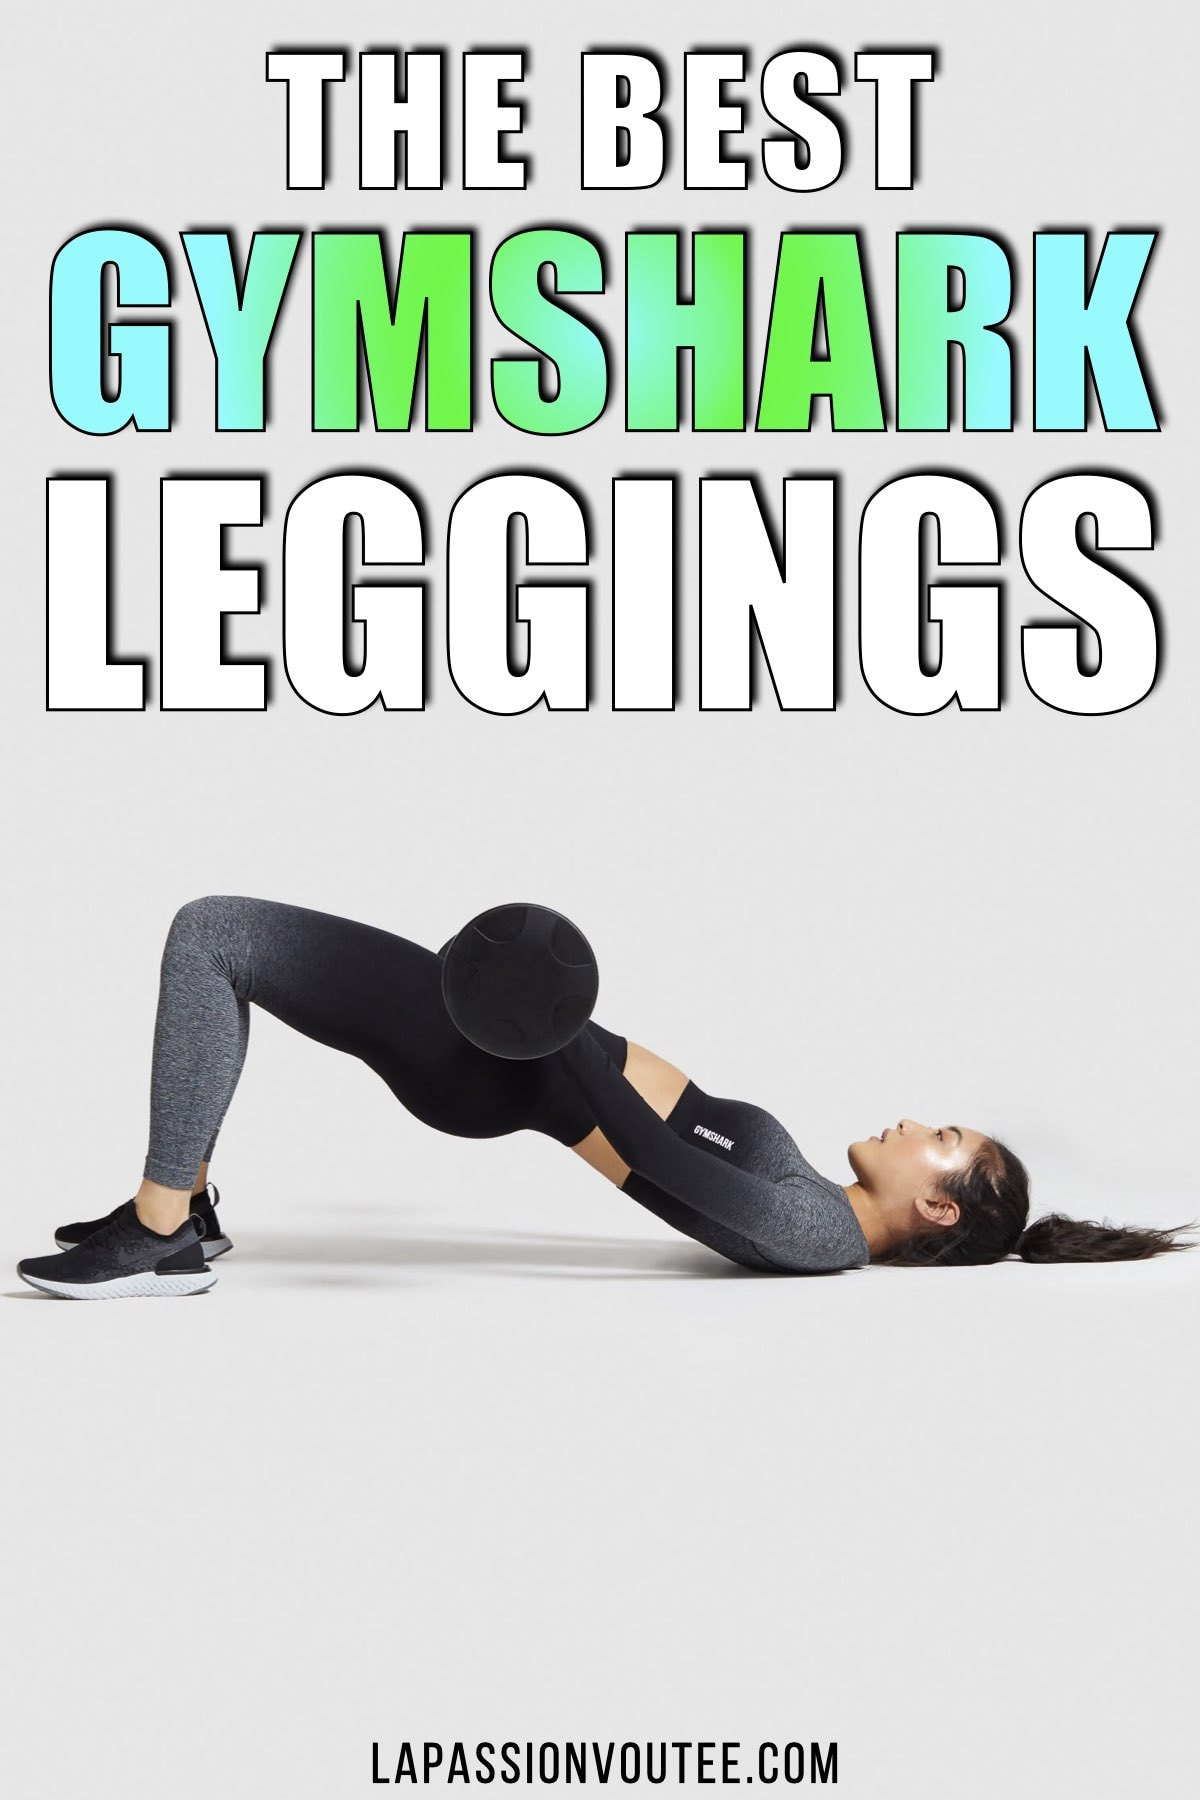 I scoured the internet for you and condensed my Gymshark research into one epic post featuring only the best Gymshark worth getting right now. These tummy-control, squat-proof, high-quality, moisture-wicking leggings are all you need to nail your workout, lounge in, or work in. They are so so good! #gmyshark #amazonfashion #athleisure